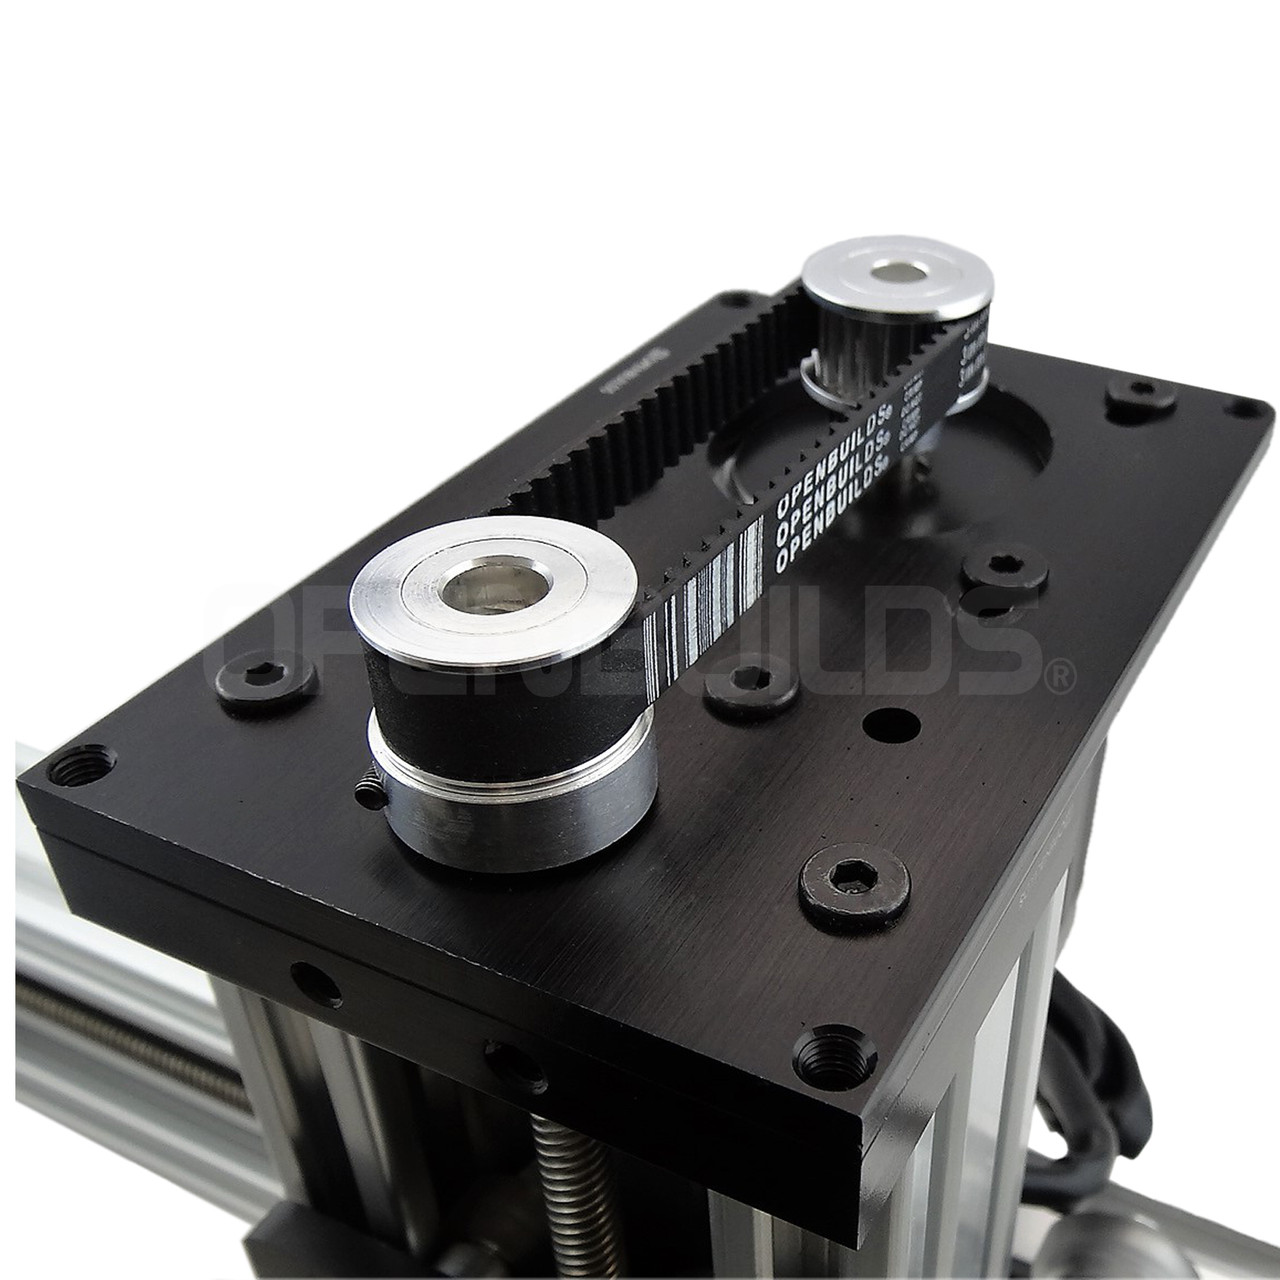 Reduction stand off plate set openbuilds part store for Low profile stepper motor